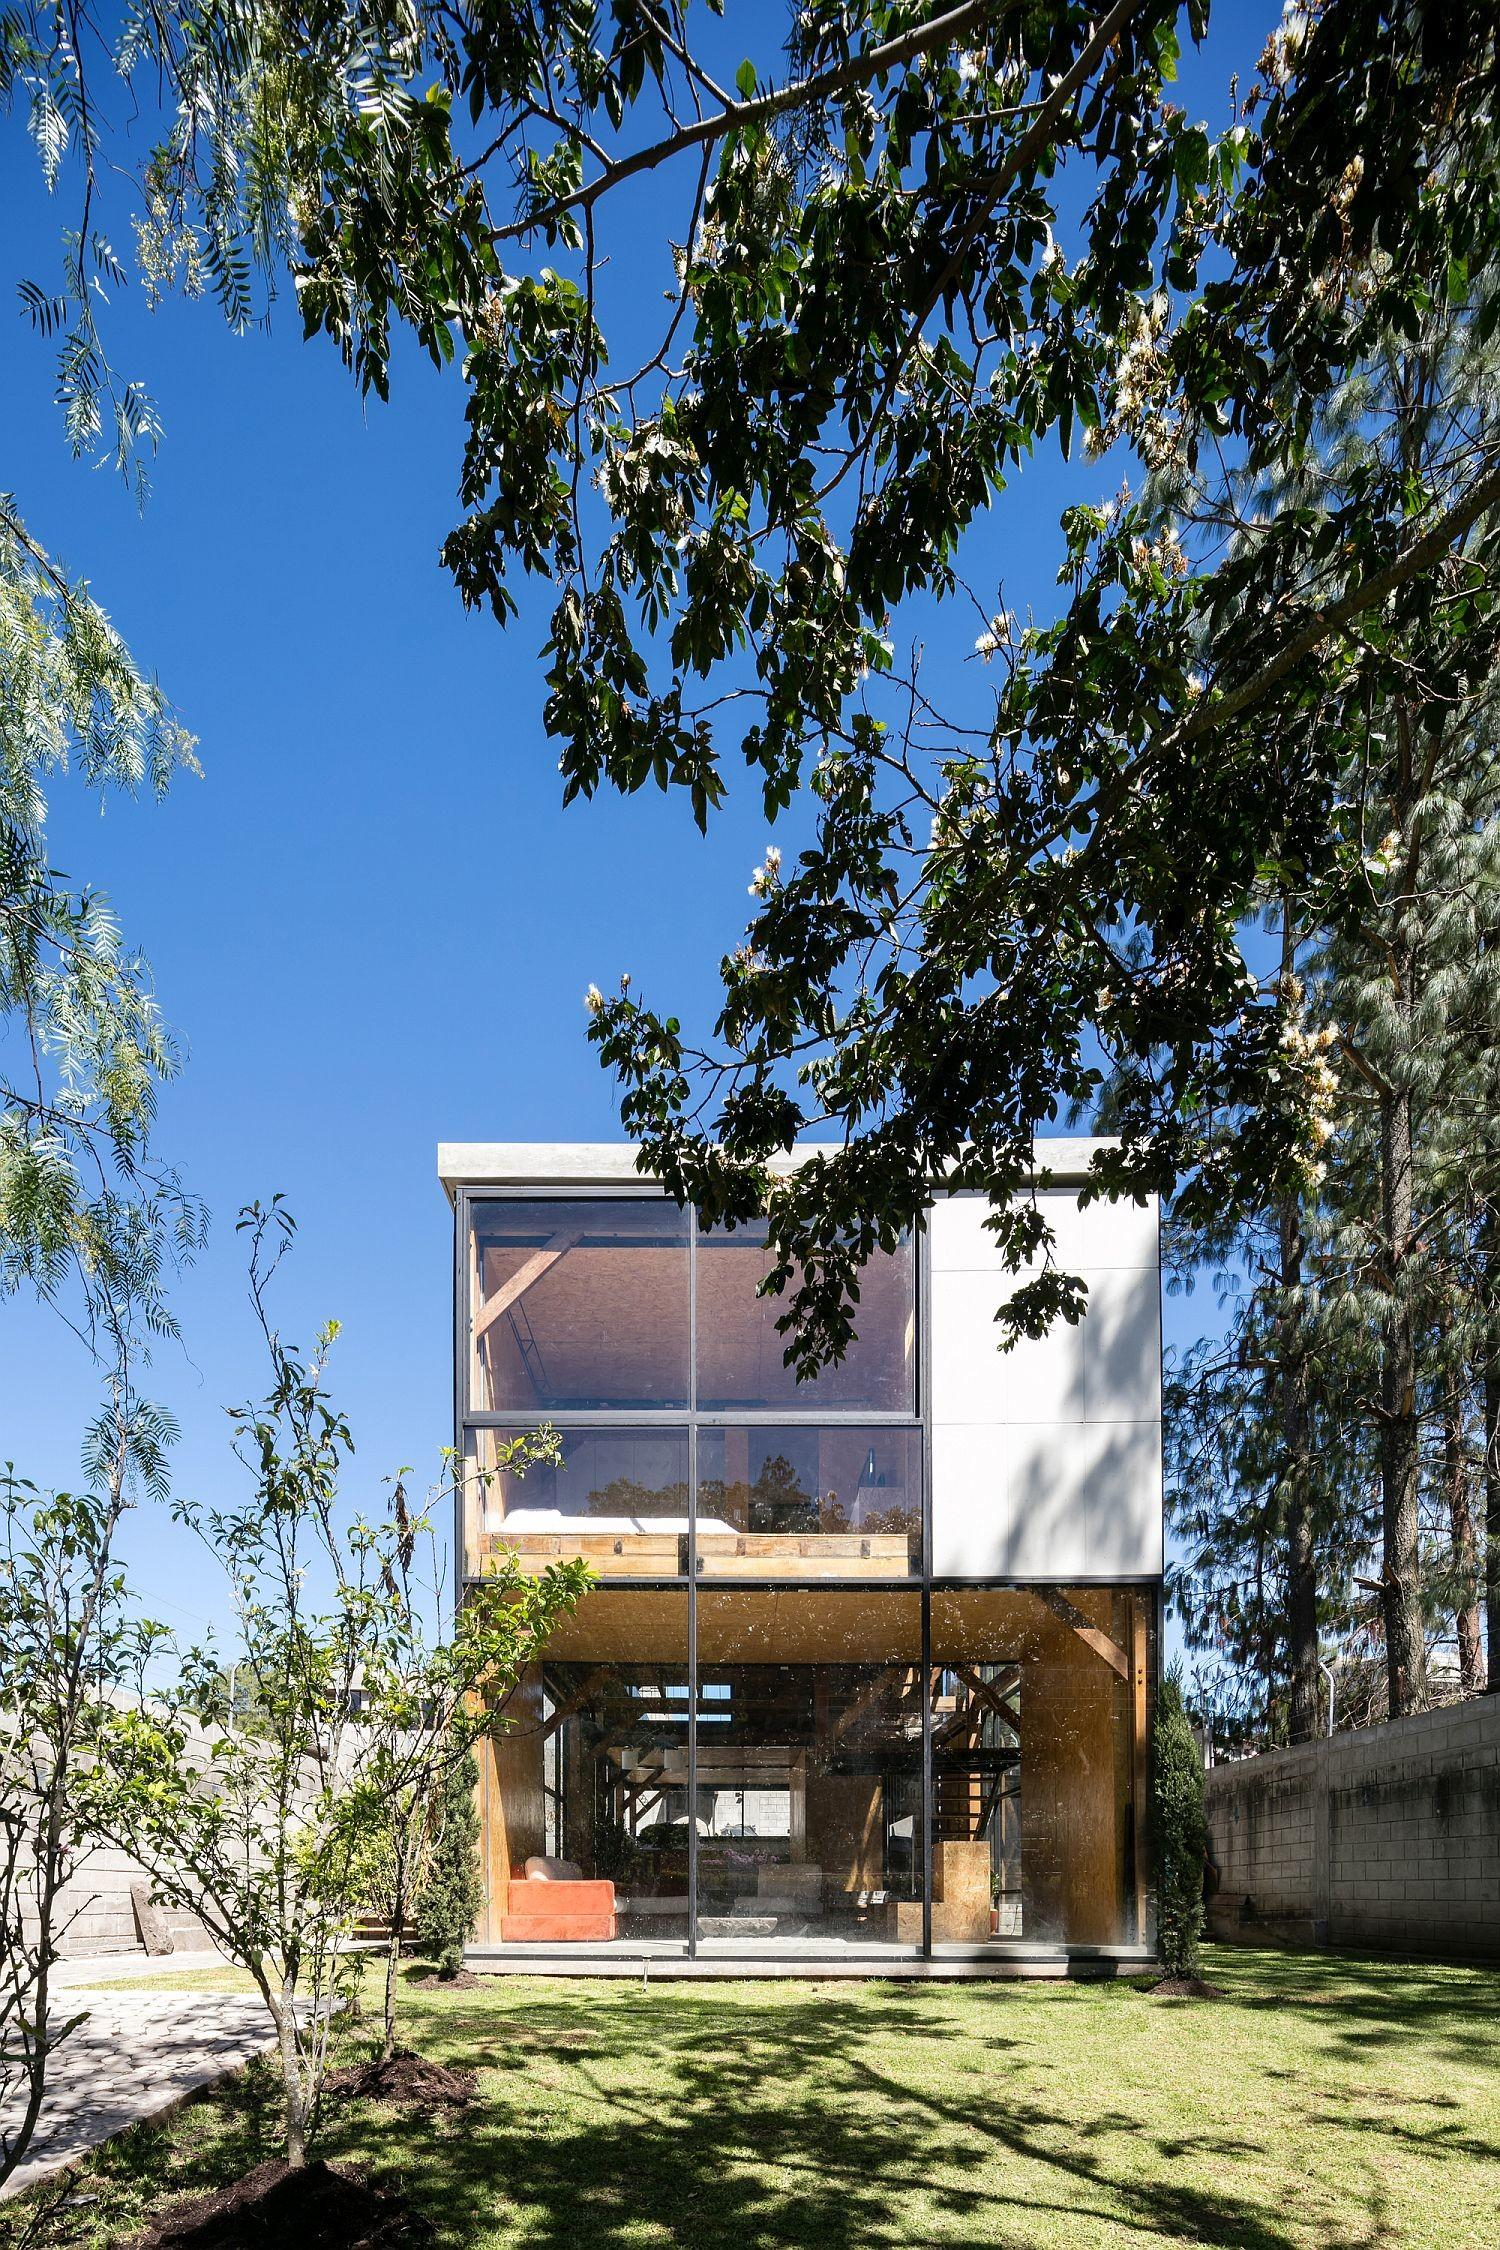 Multi Generational Family House Promotes Healthy Lifestyle